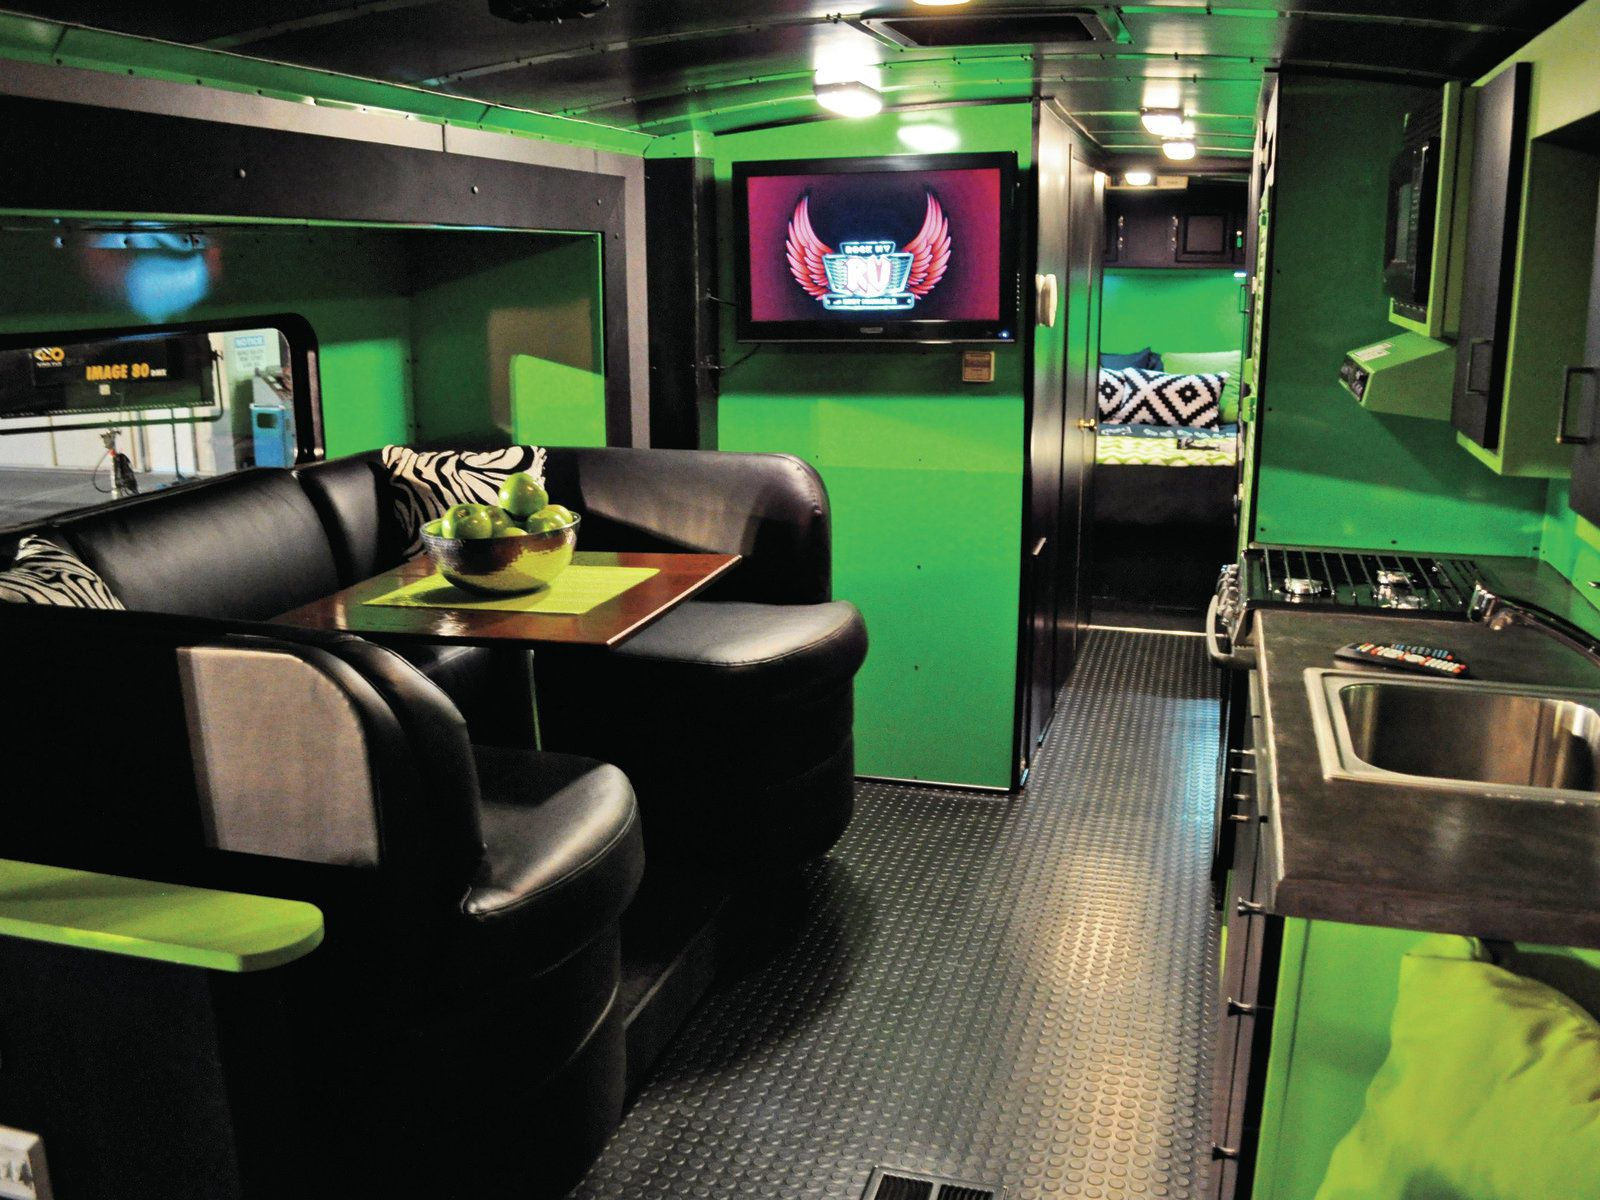 Modern rv interiors - Rv Is Your Source For Everything About The Rv Lifestyle From Travel Destinations Technical